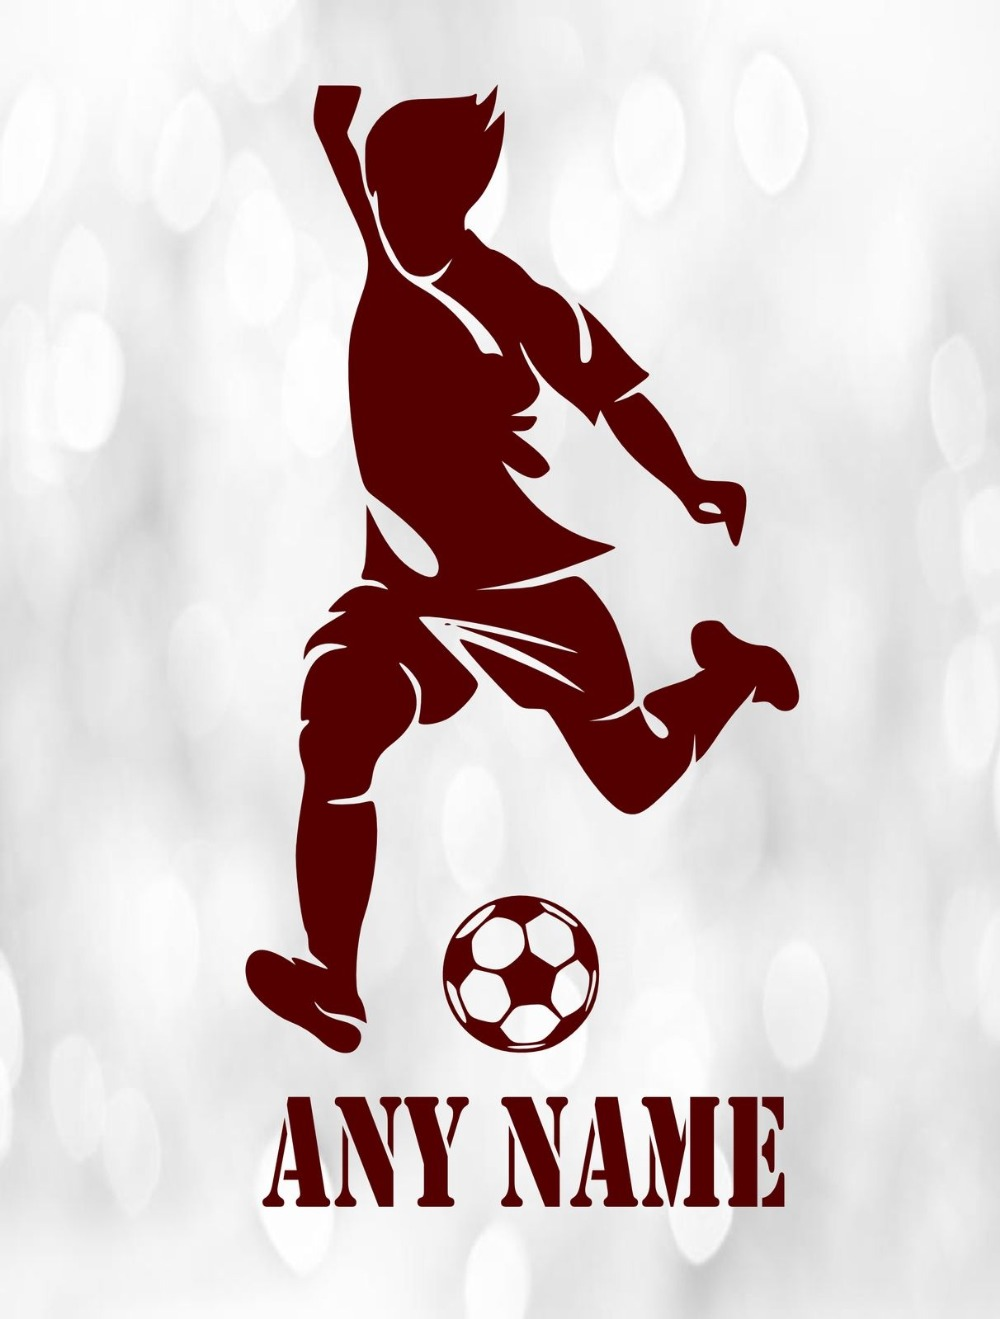 Custom made Personalized Football Player Vinyl Removable Wall Sticker Any Name Art Decal Custom Gift-You Choose Name and Color(China (Mainland))